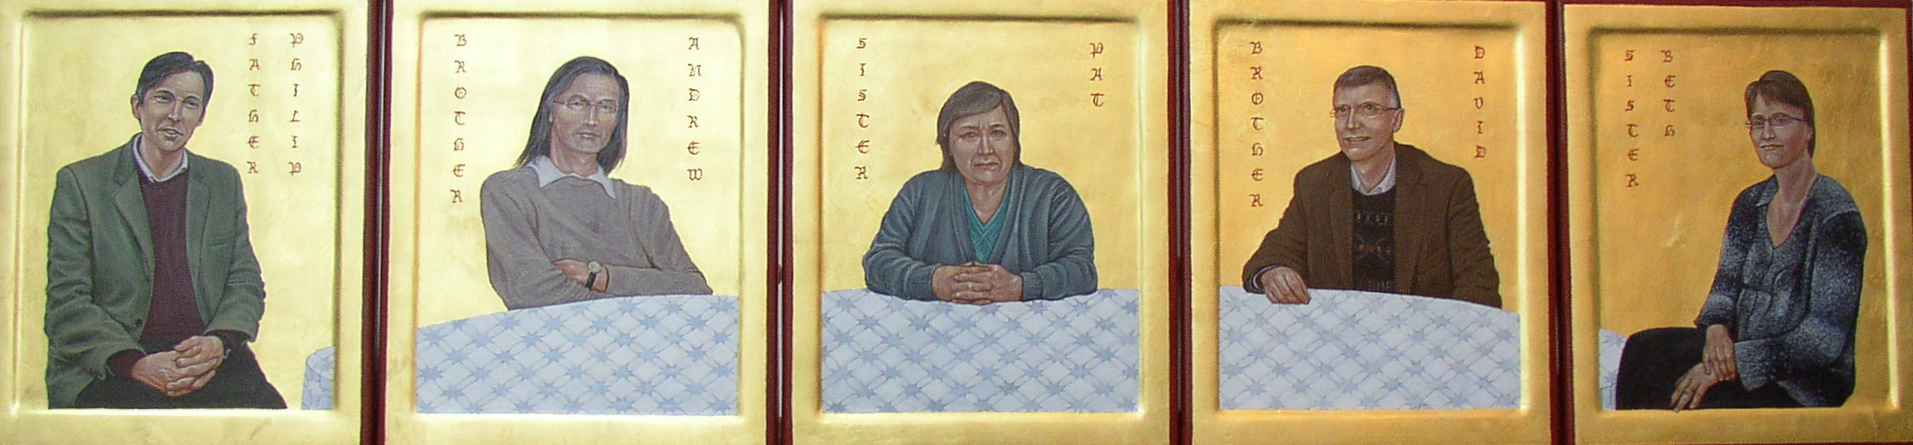 Regan O'Callaghan religious icon, sainthood of all believers, gold leaf, egg tempera